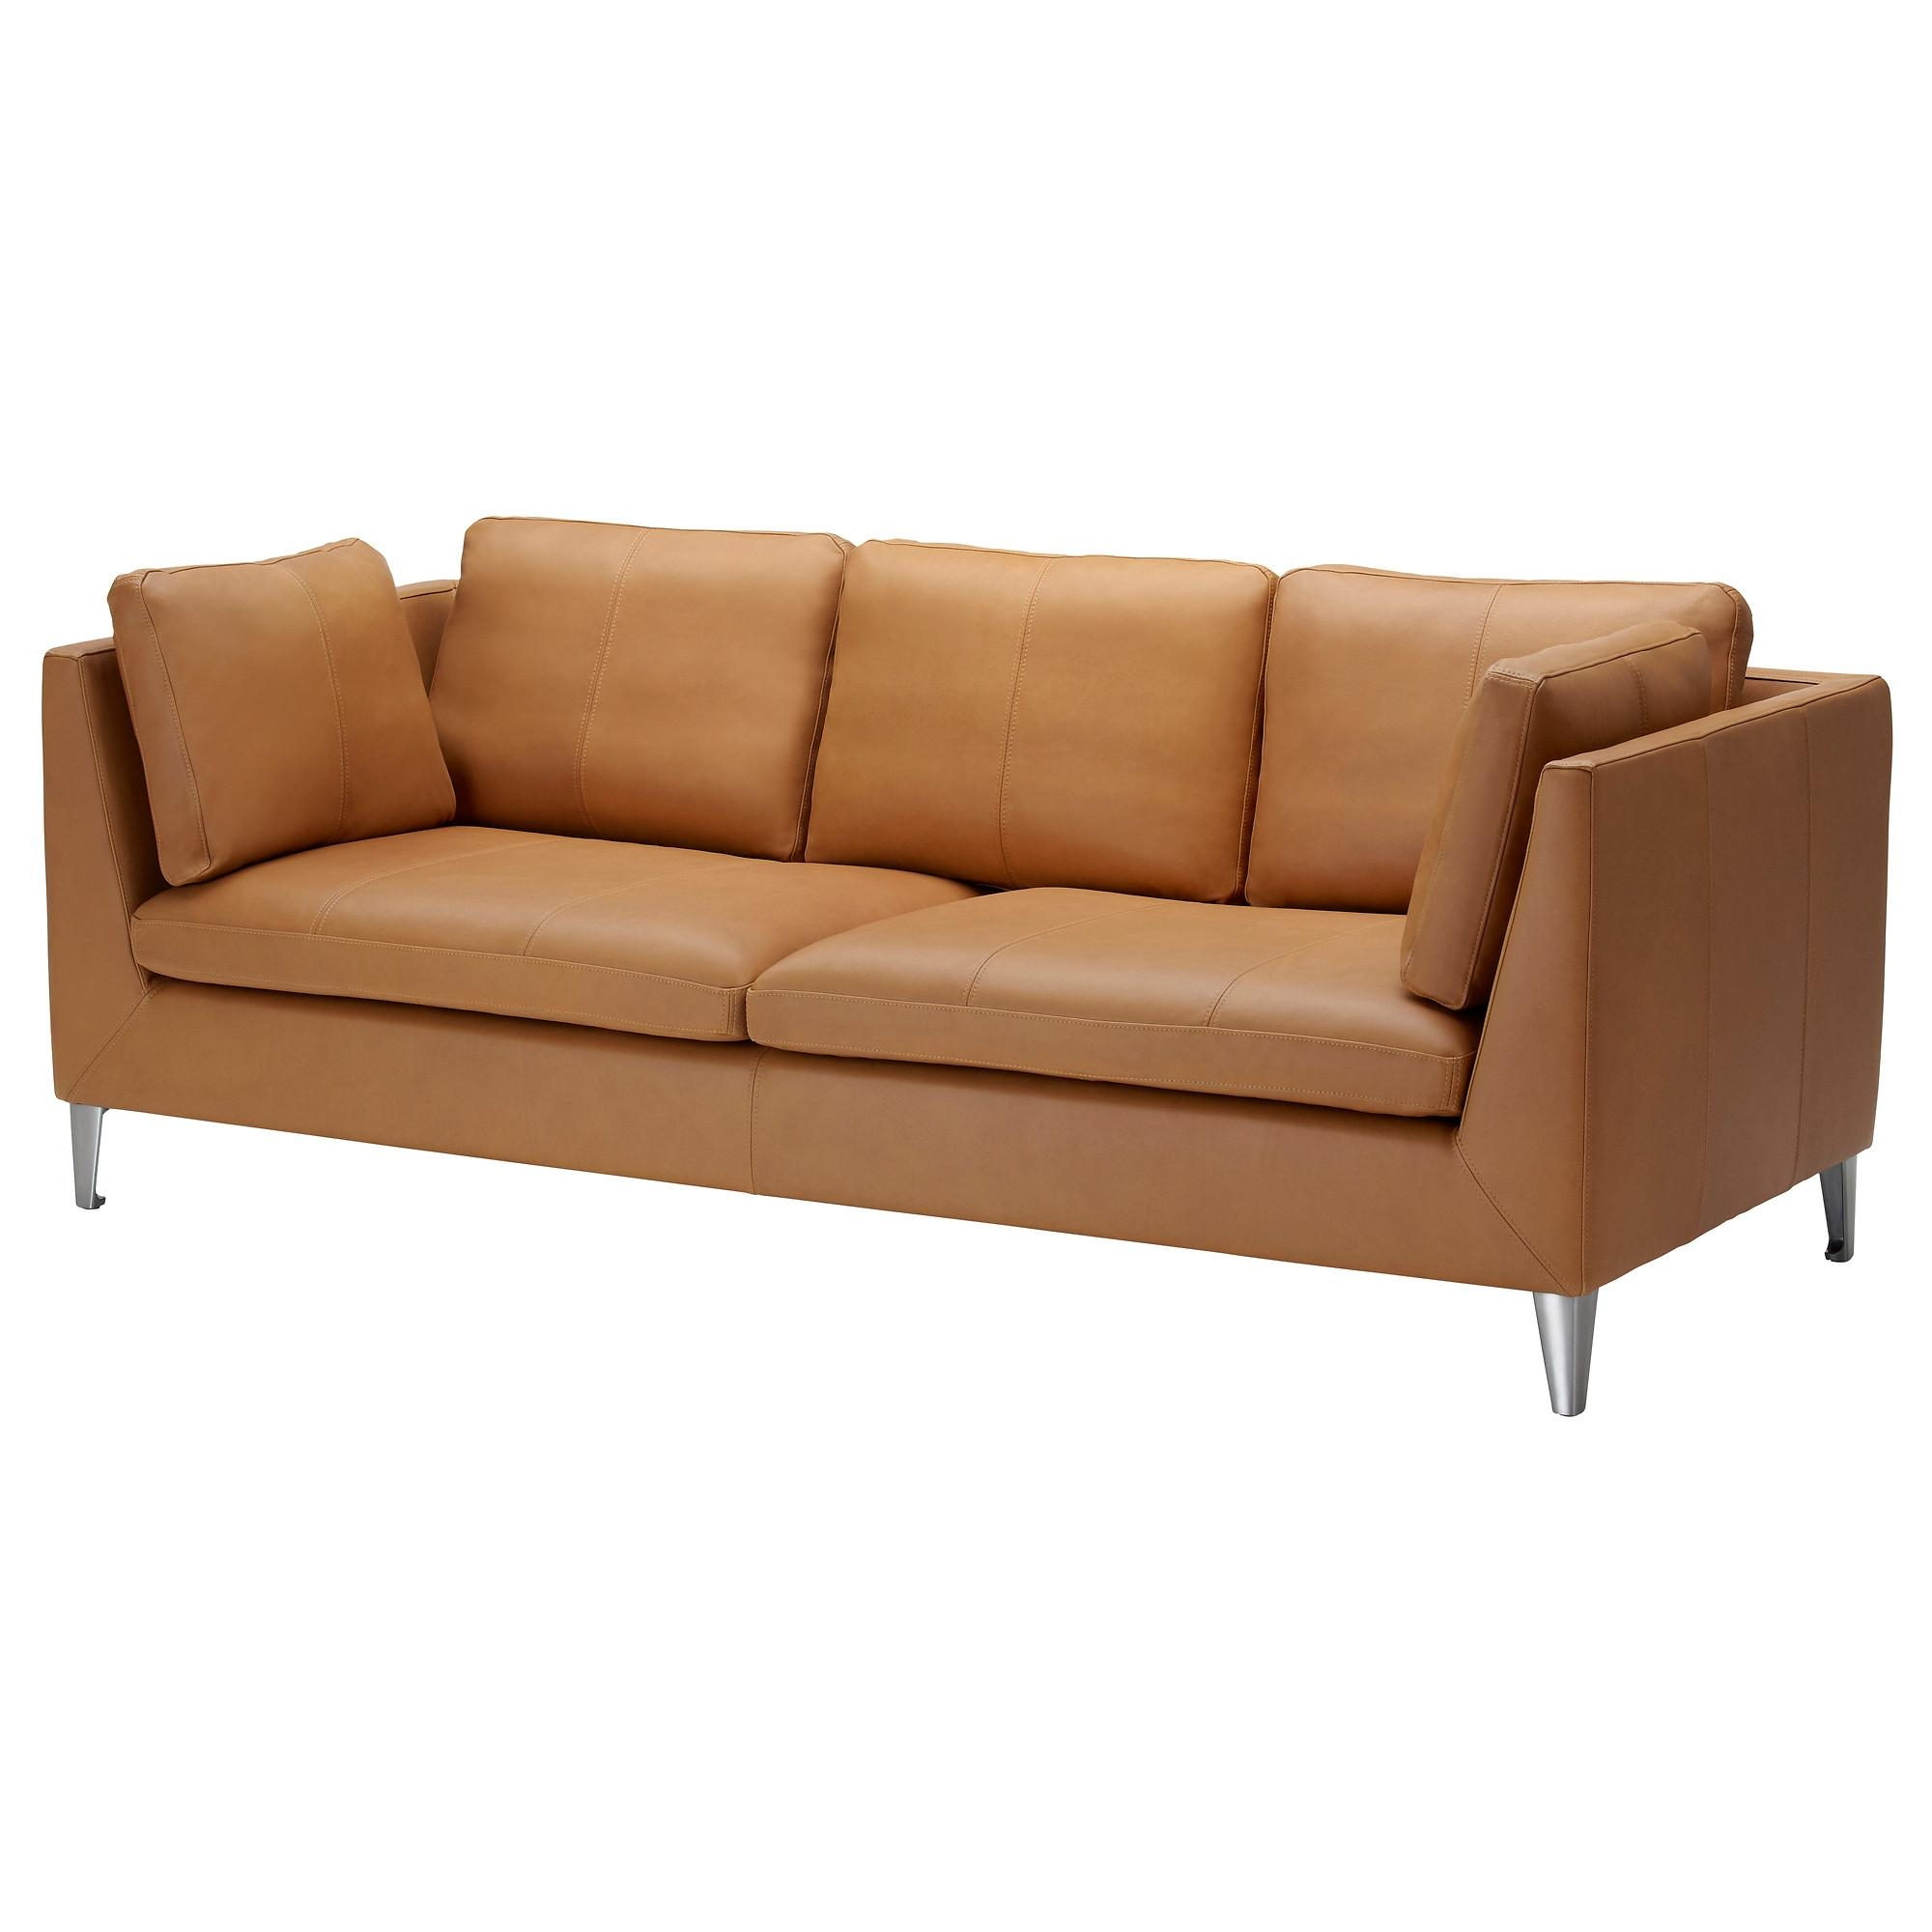 Leather & Faux Leather Couches, Chairs & Ottomans – Ikea Intended For Sofa Chairs Ikea (View 15 of 20)